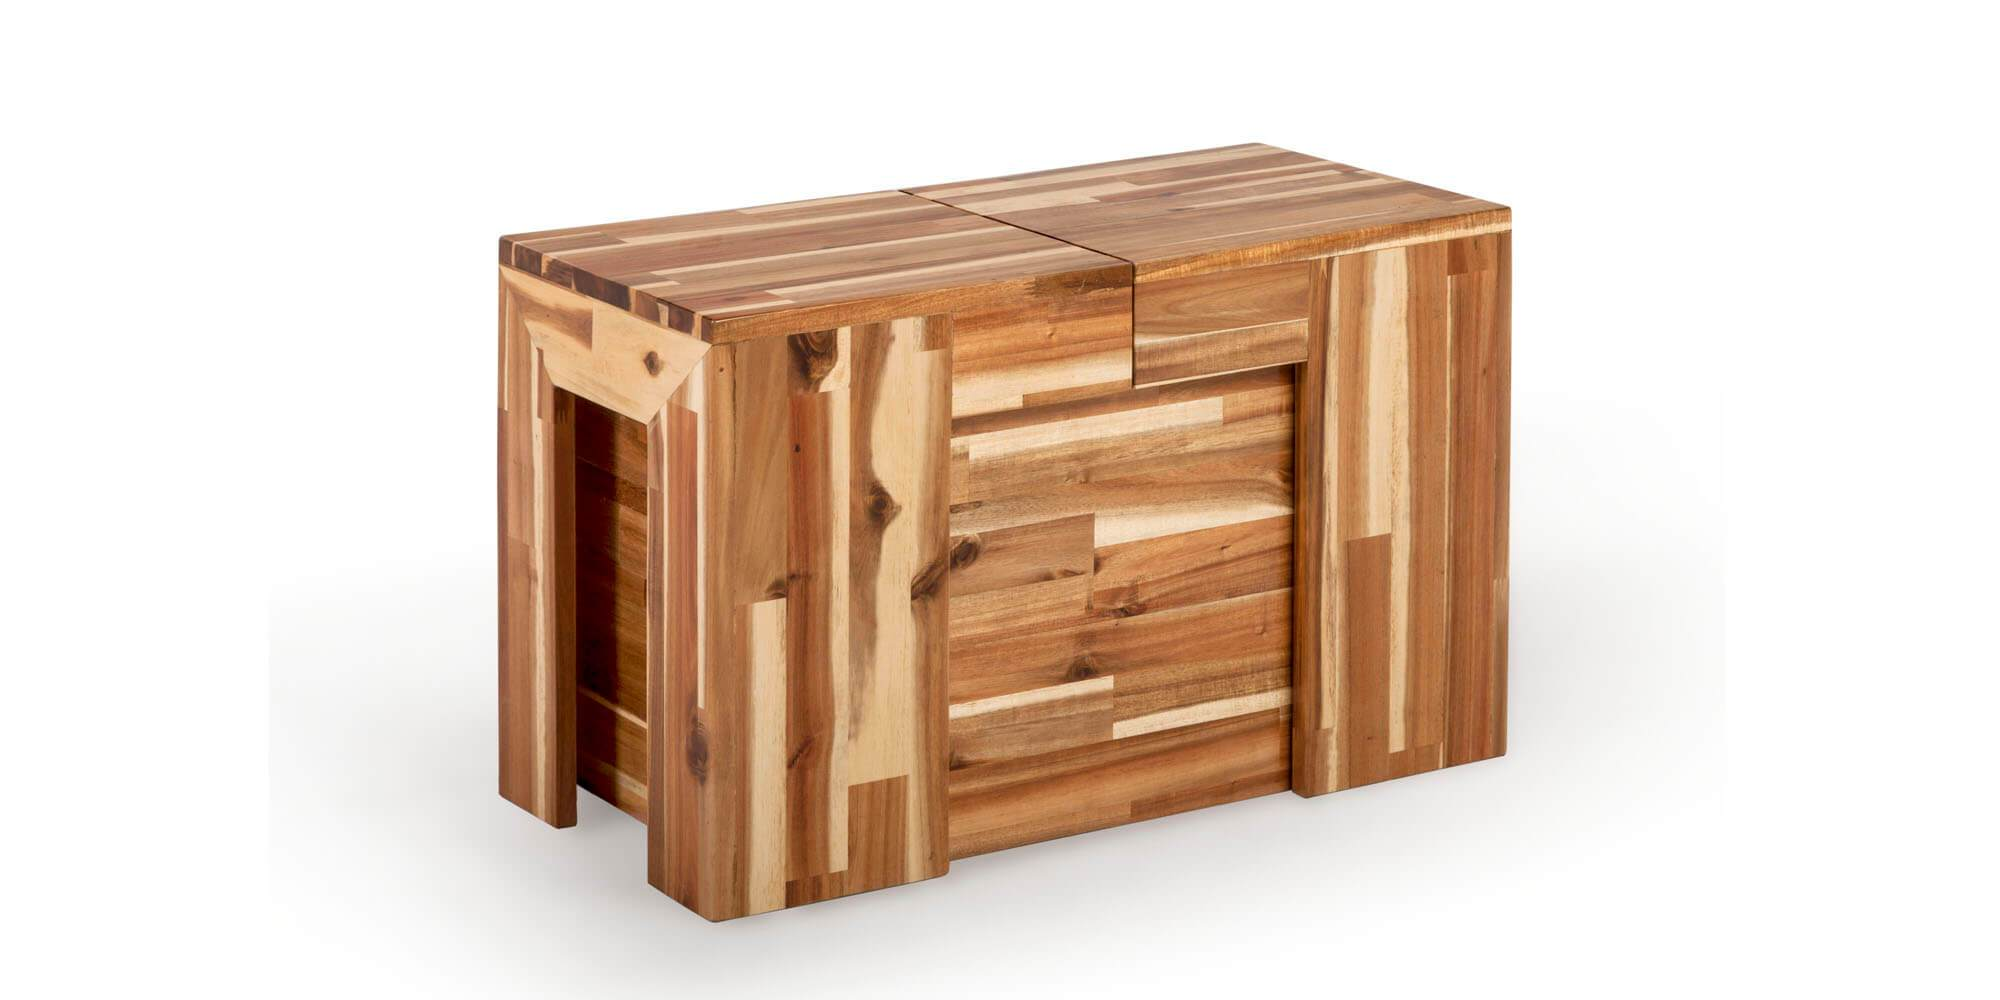 Le Transformer Bench 2.0 + Acacia naturel